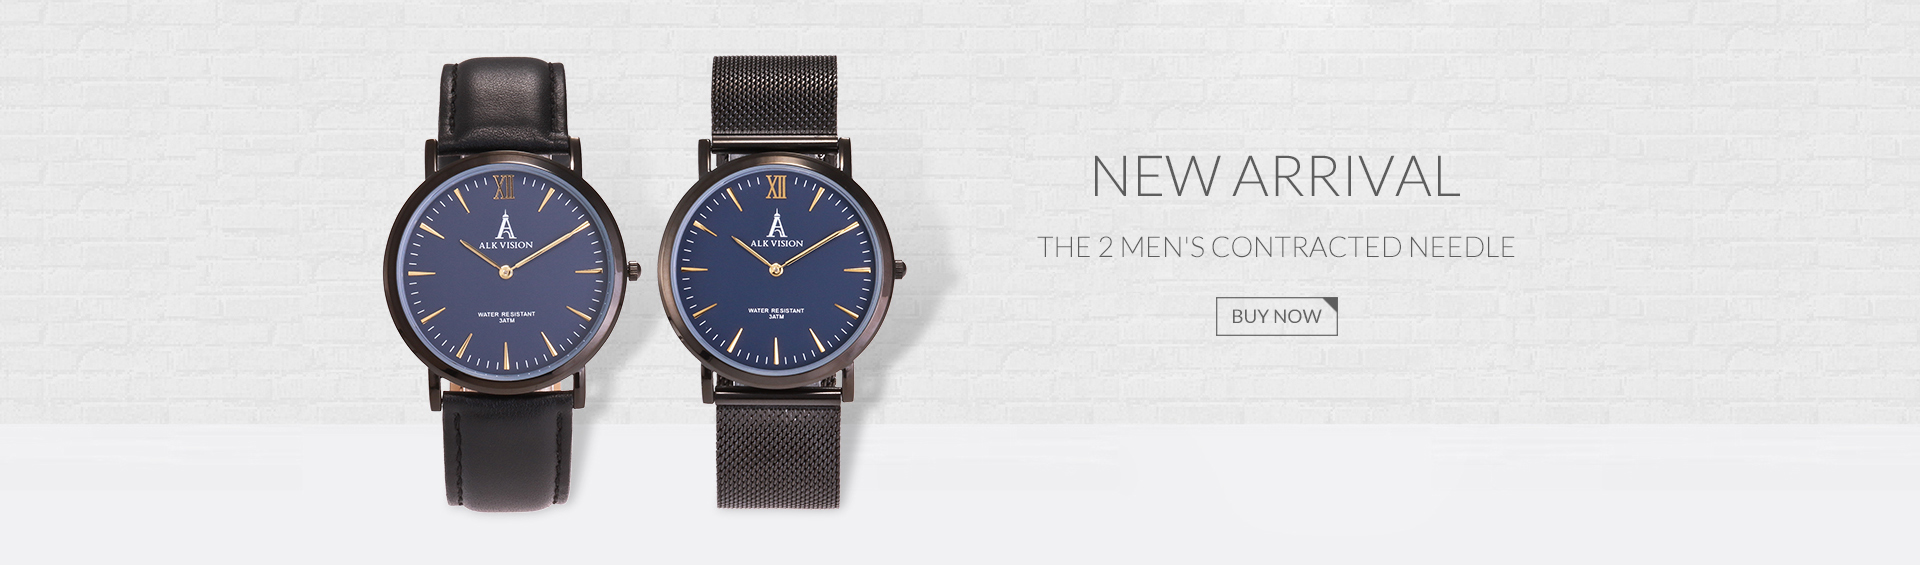 black mens casual watch